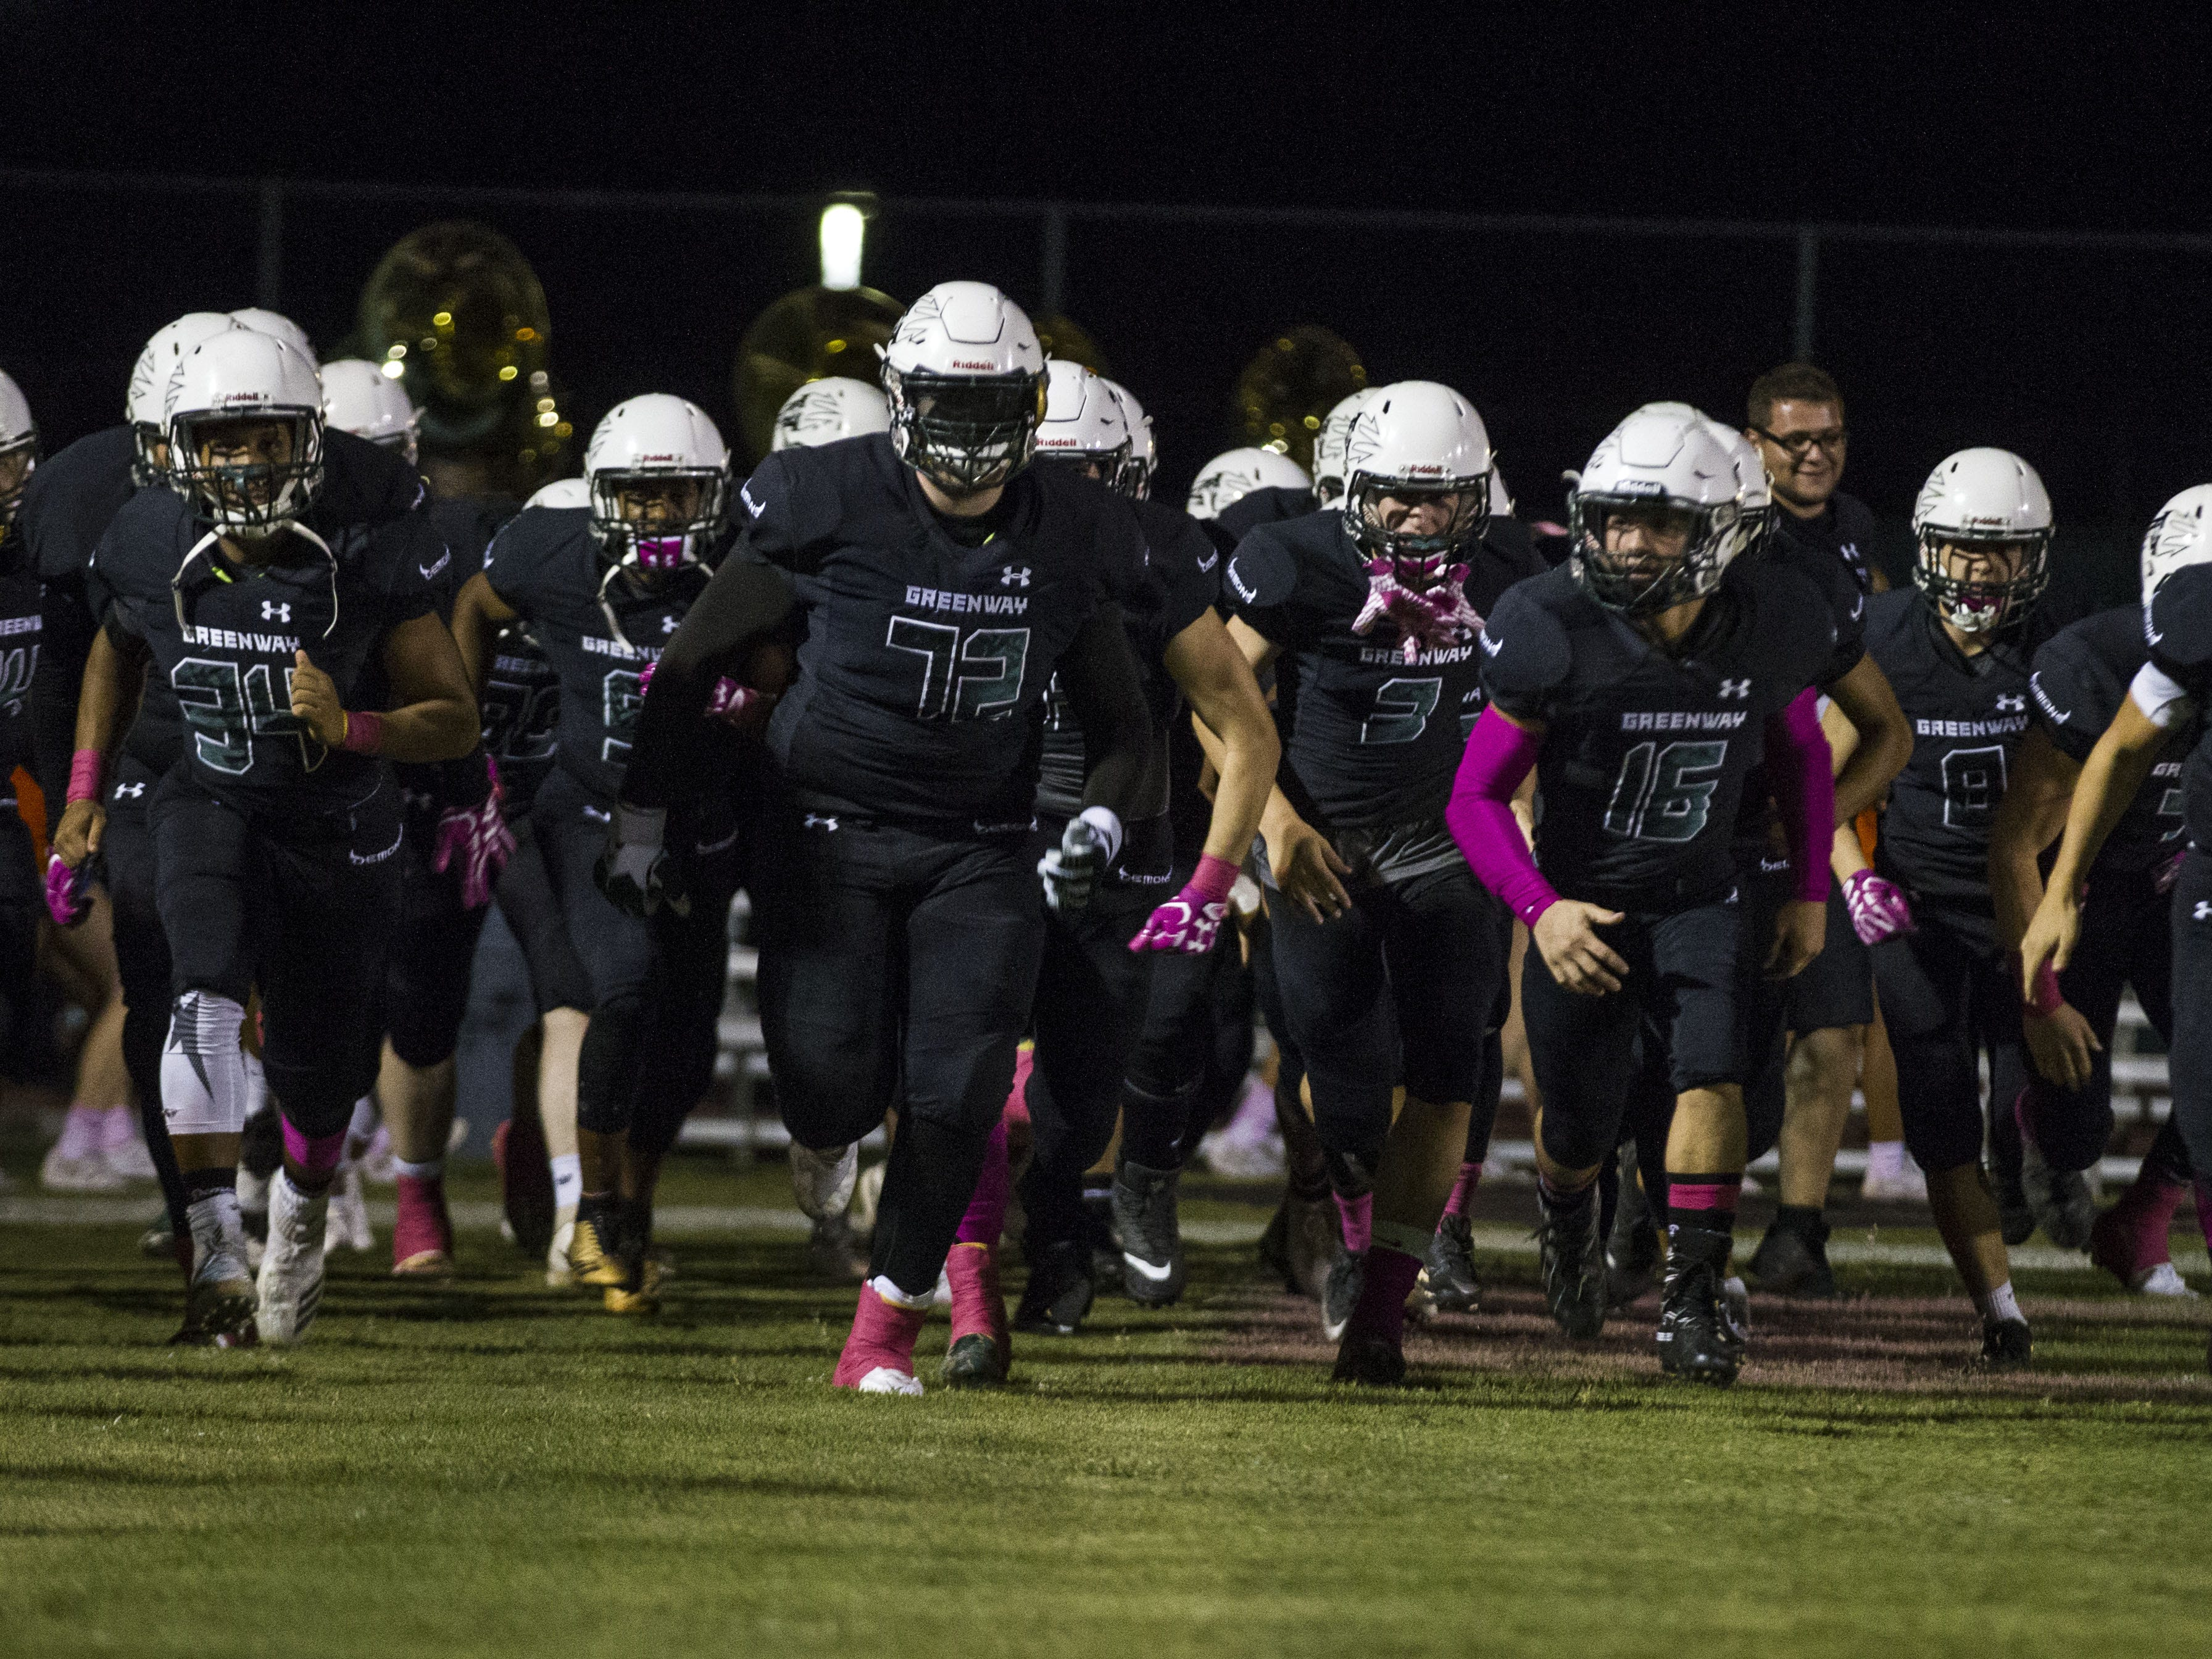 Washington High School players run out on to the field before their game with Thunderbird in Phoenix Friday, Oct. 5, 2018. #azhsfb